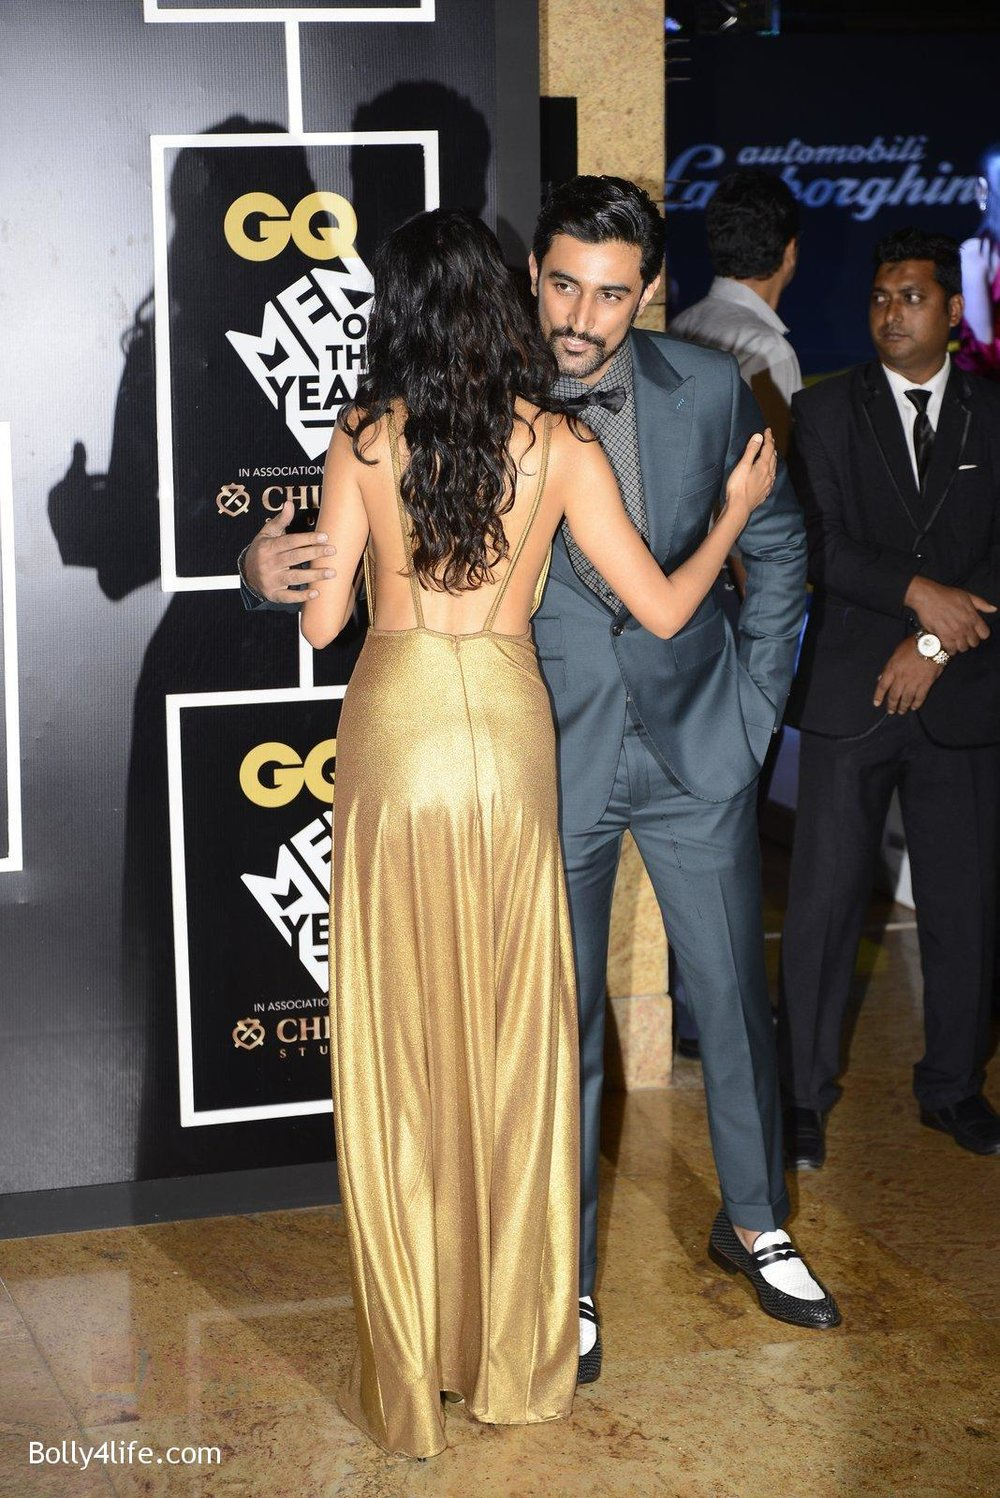 Sarah-Jane-Dias-at-GQ-MEN-OF-THE-YEAR-on-27th-Sept-2016-1018.jpg